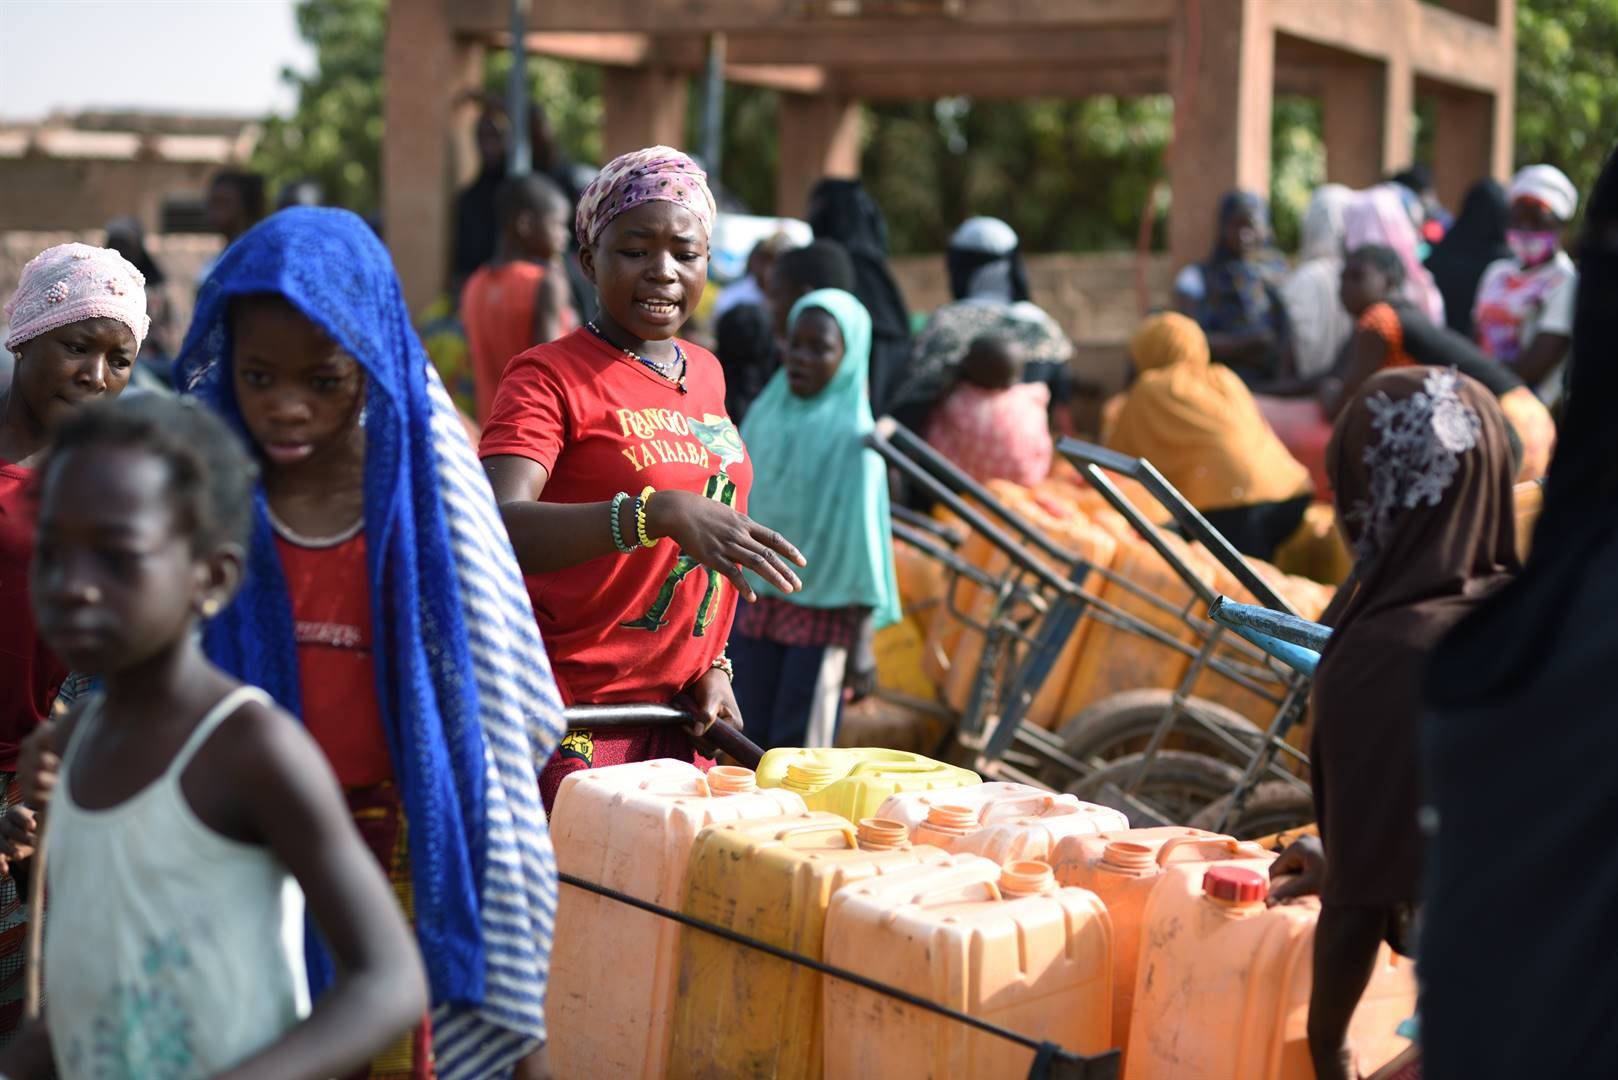 climate benefit People wait for their turn to buy water from a privately-owned water tower, amid an outbreak of the Covid-19 coronavirus pandemic, in Taabtenga district of Ouagadougou, Burkina Faso Photo: reuters